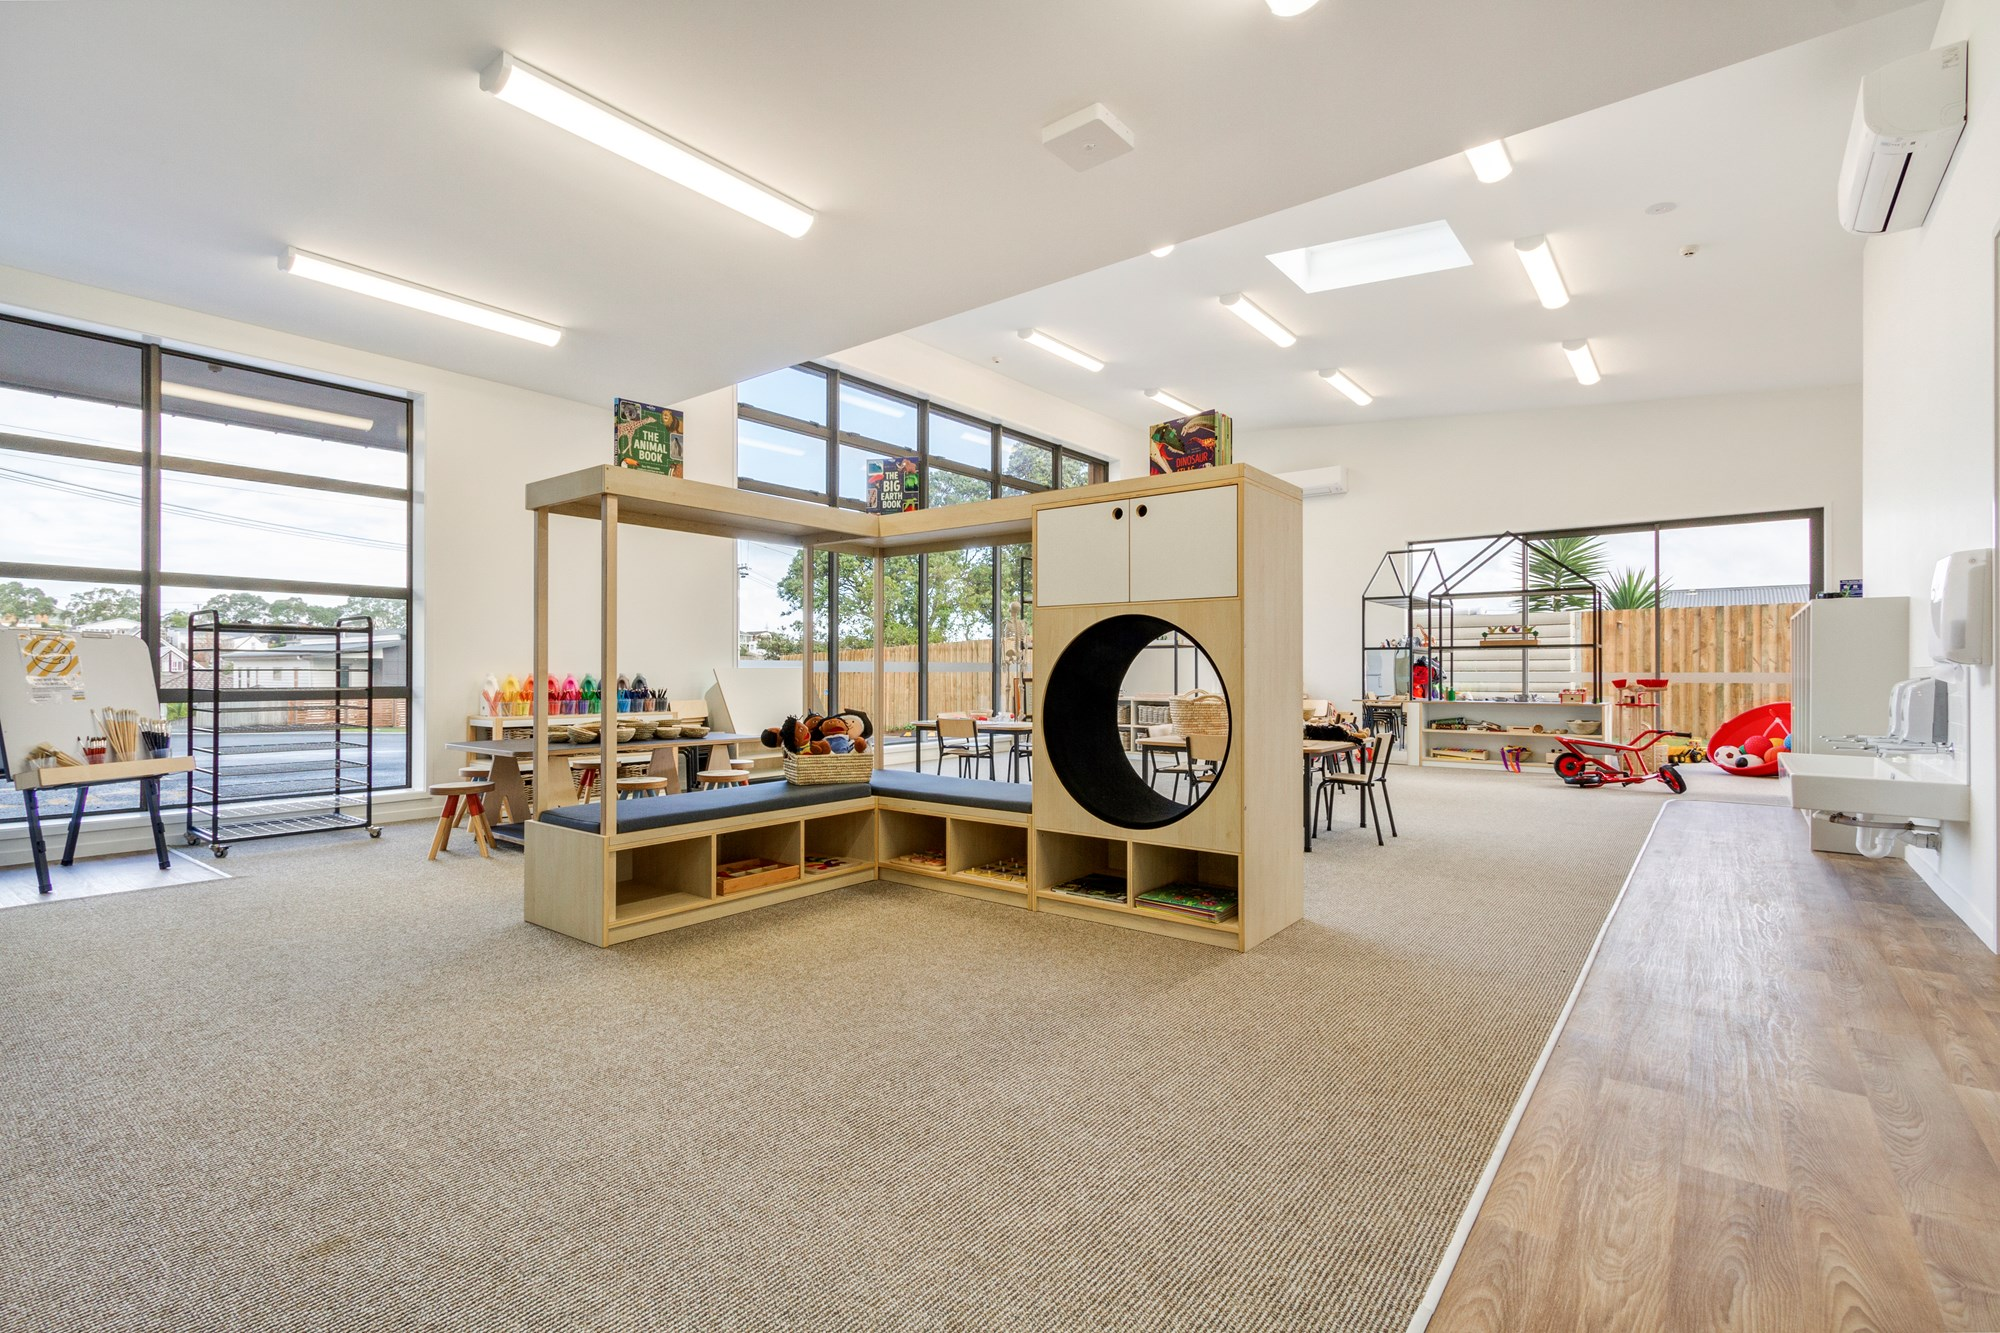 The Village Early Learning Centre - 7 Kinross Street - Blockhouse Bay (5)